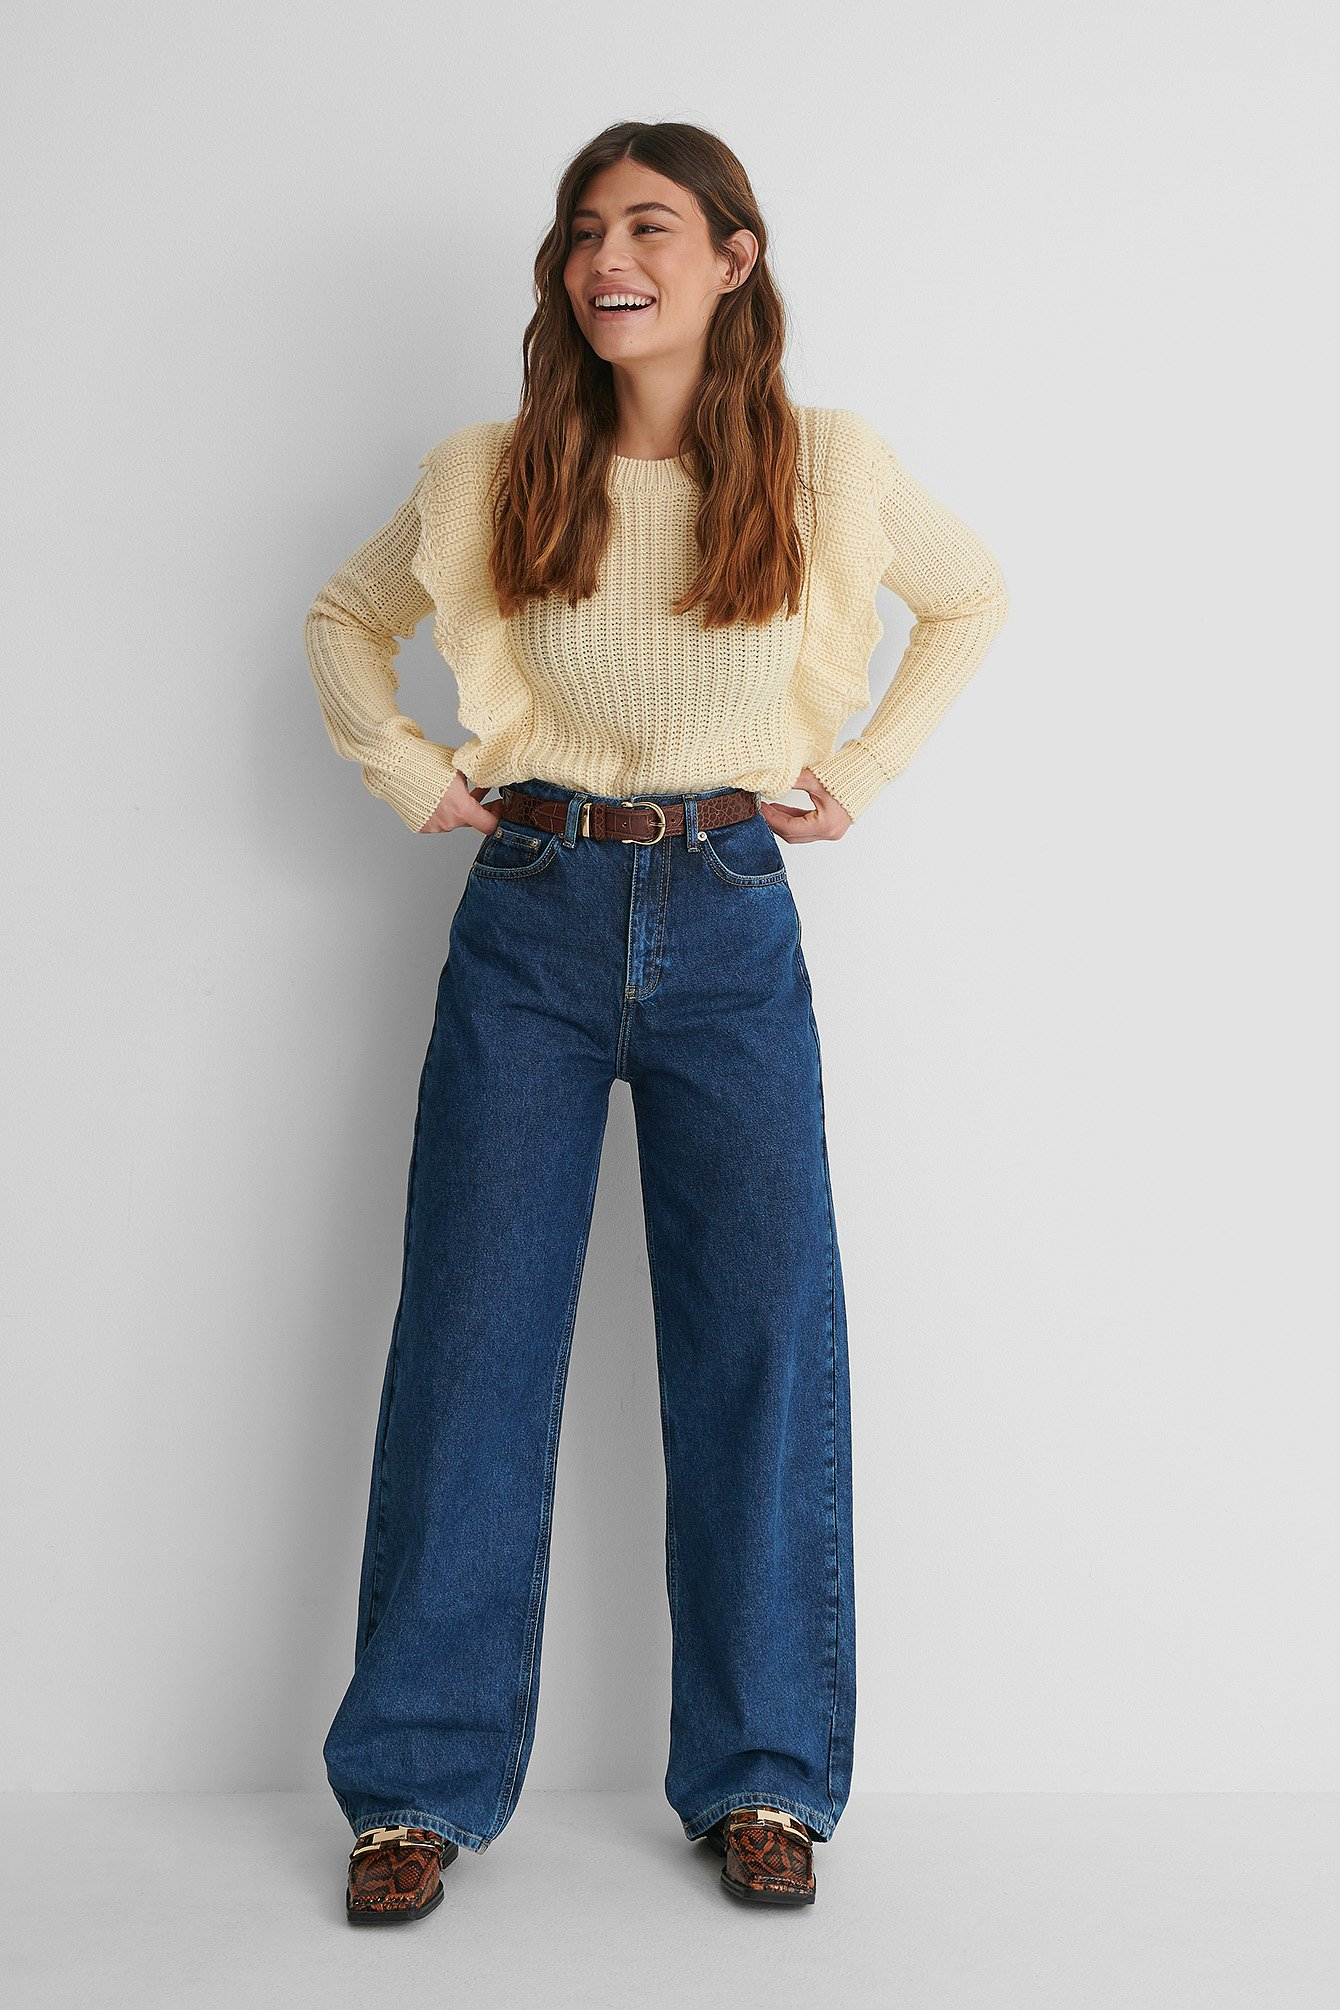 Flounce Detail Long Sleeve Knitted Sweater with Wide Jeans.